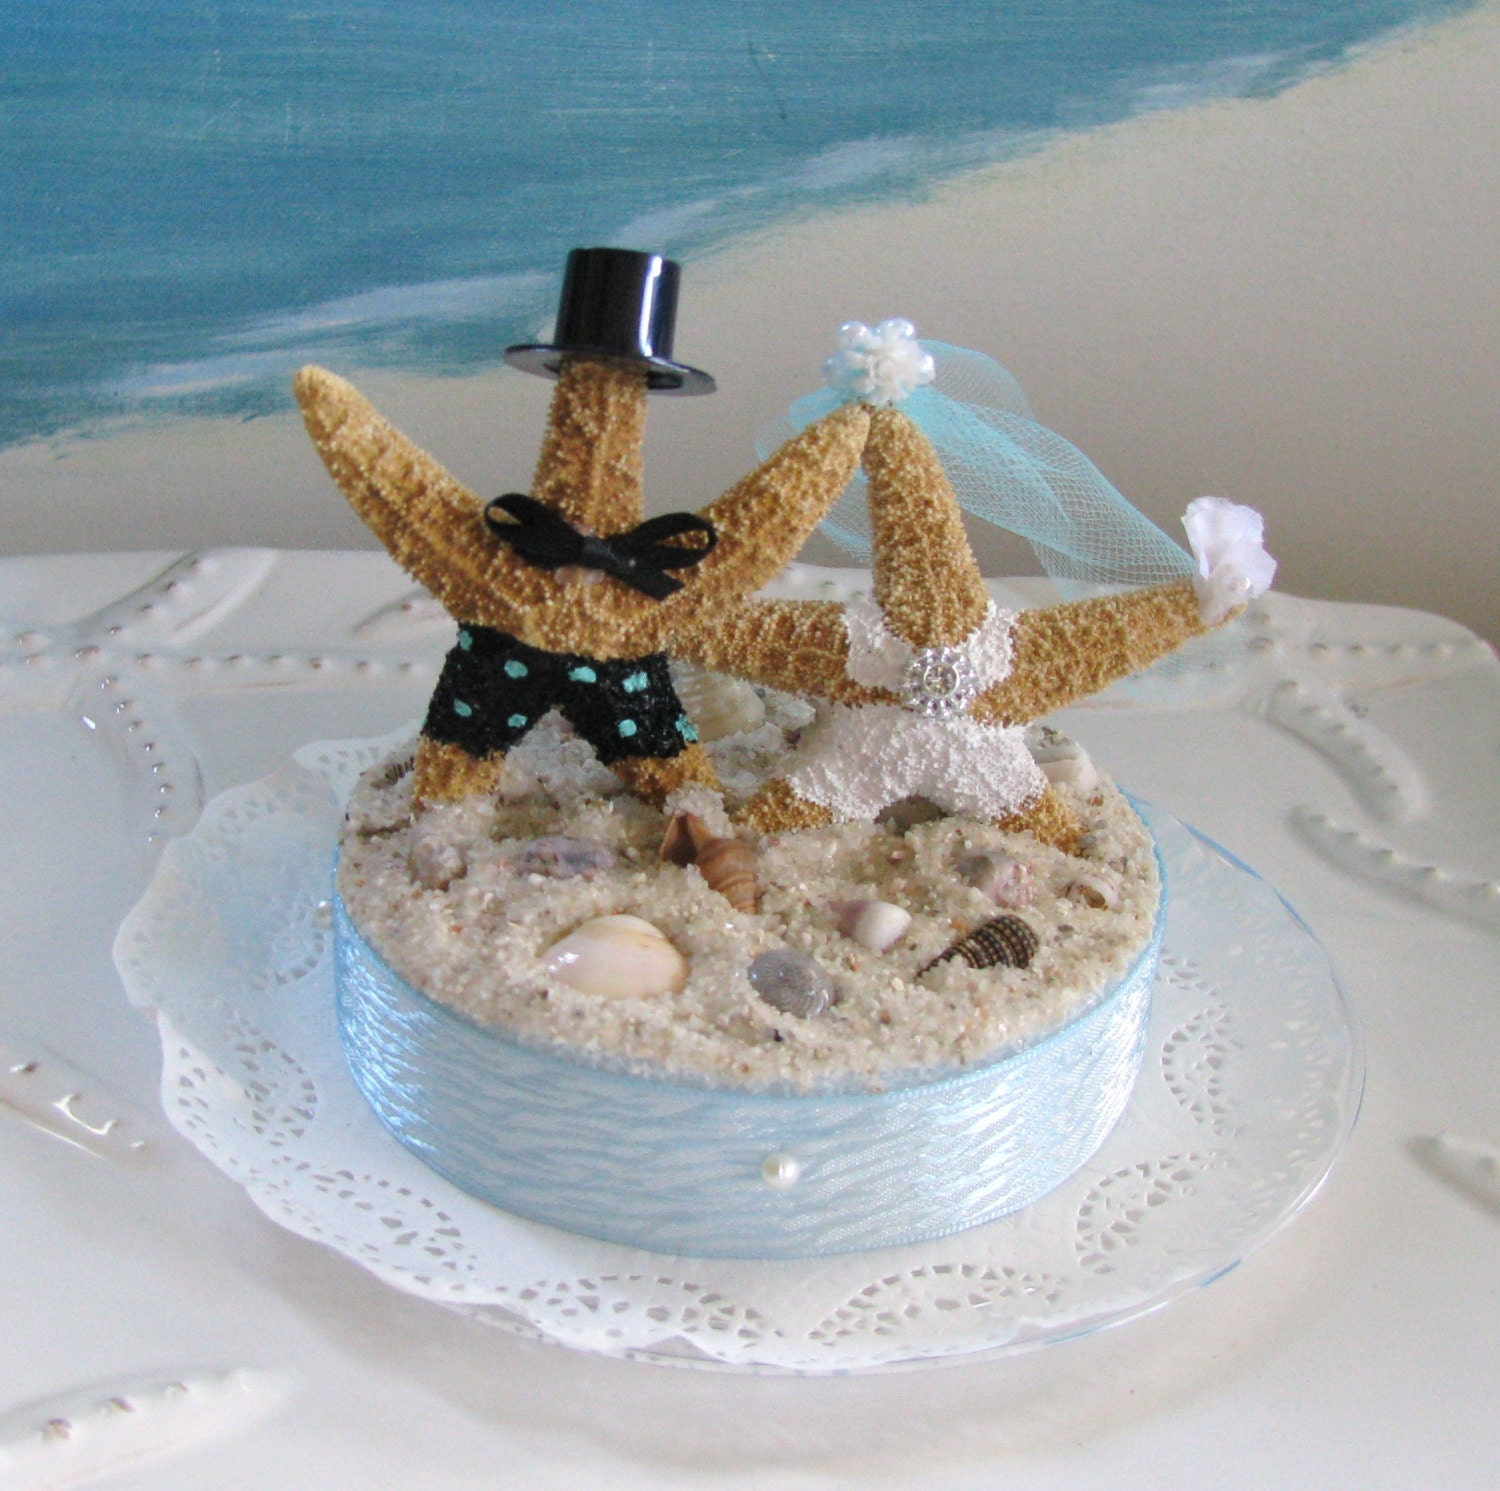 Starfish Bride and Groom on a Beach Wedding Cake